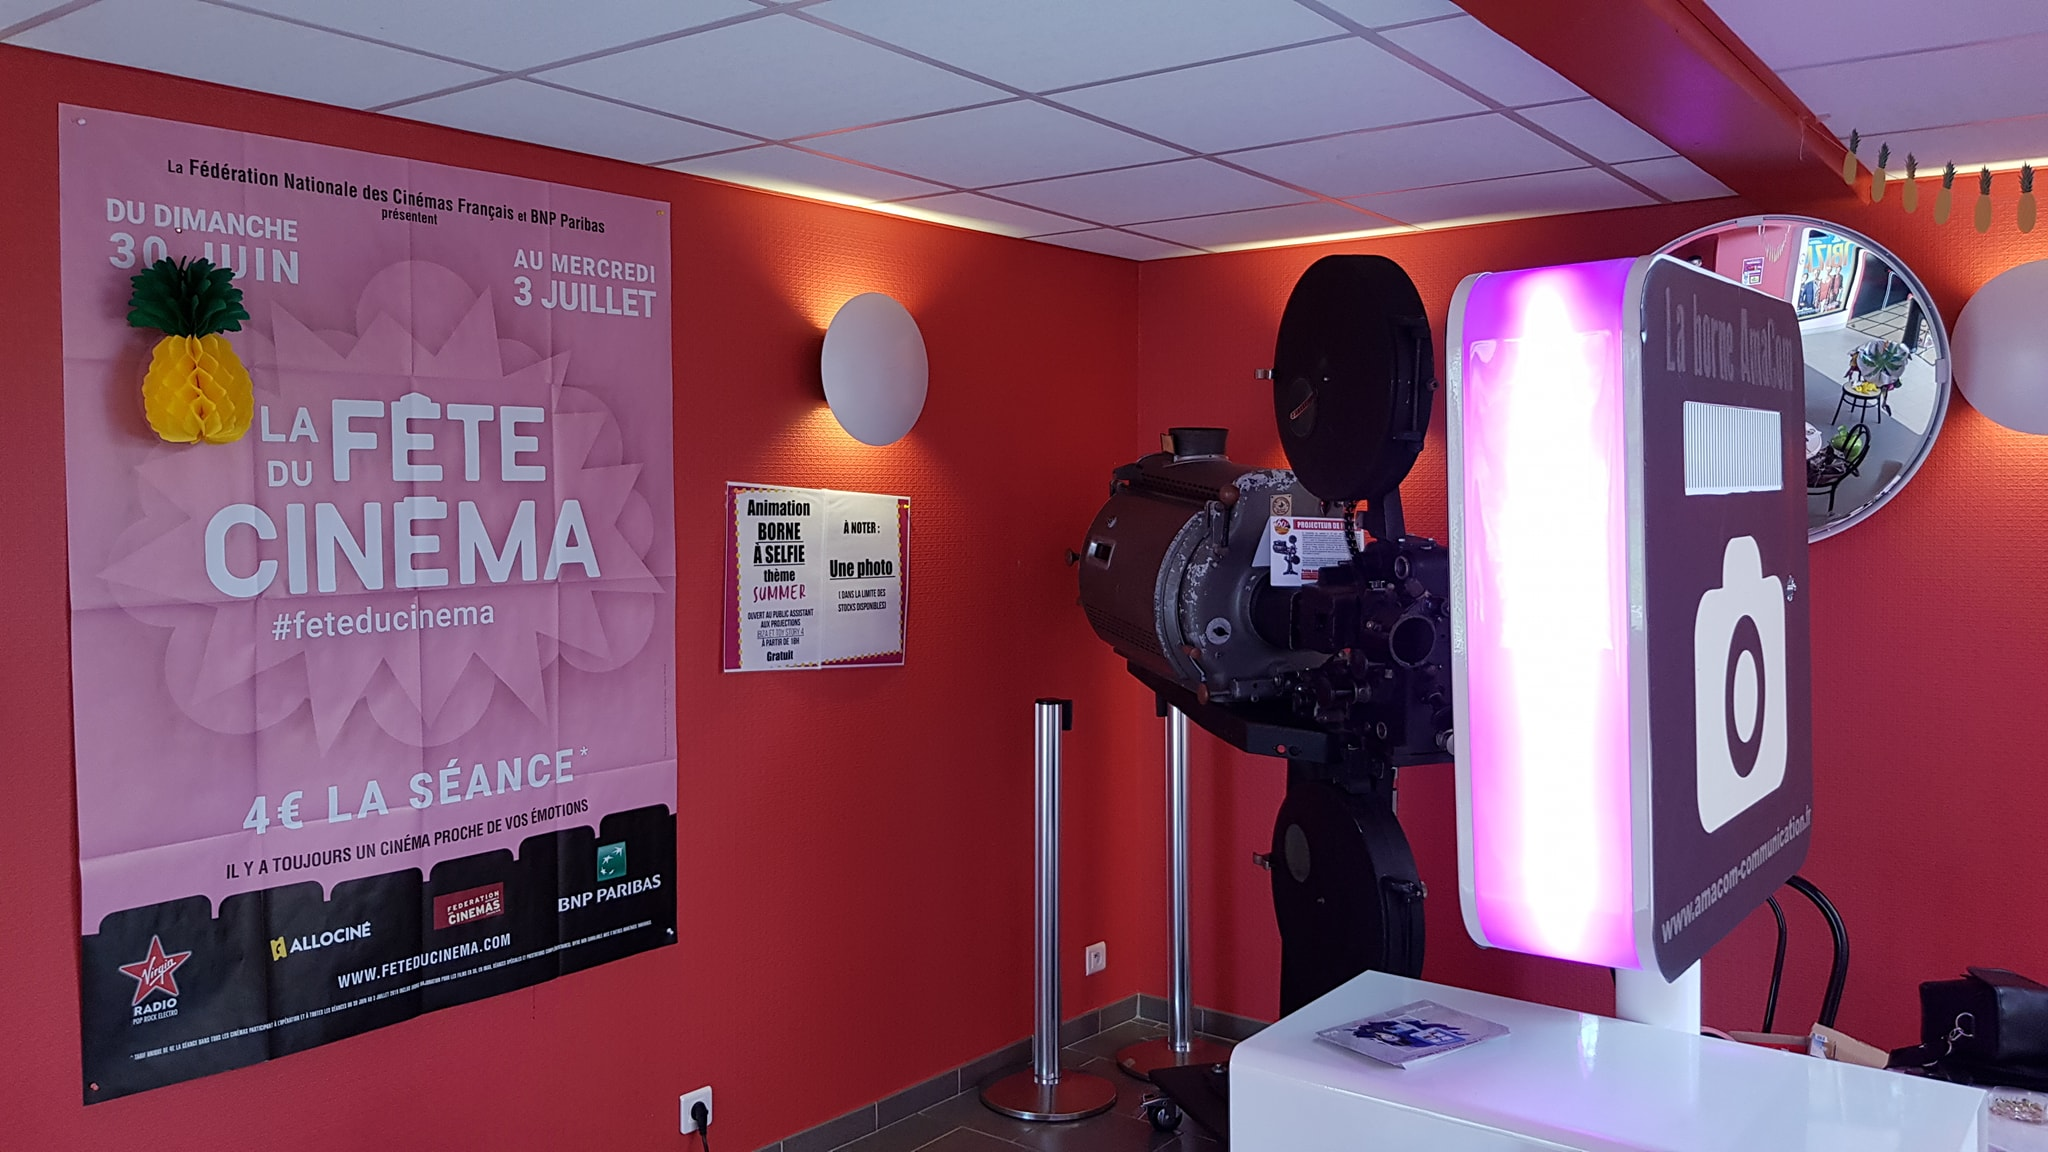 photobooth selfie photo borne le neubourg cinema eure normandie fête mairie collectivité